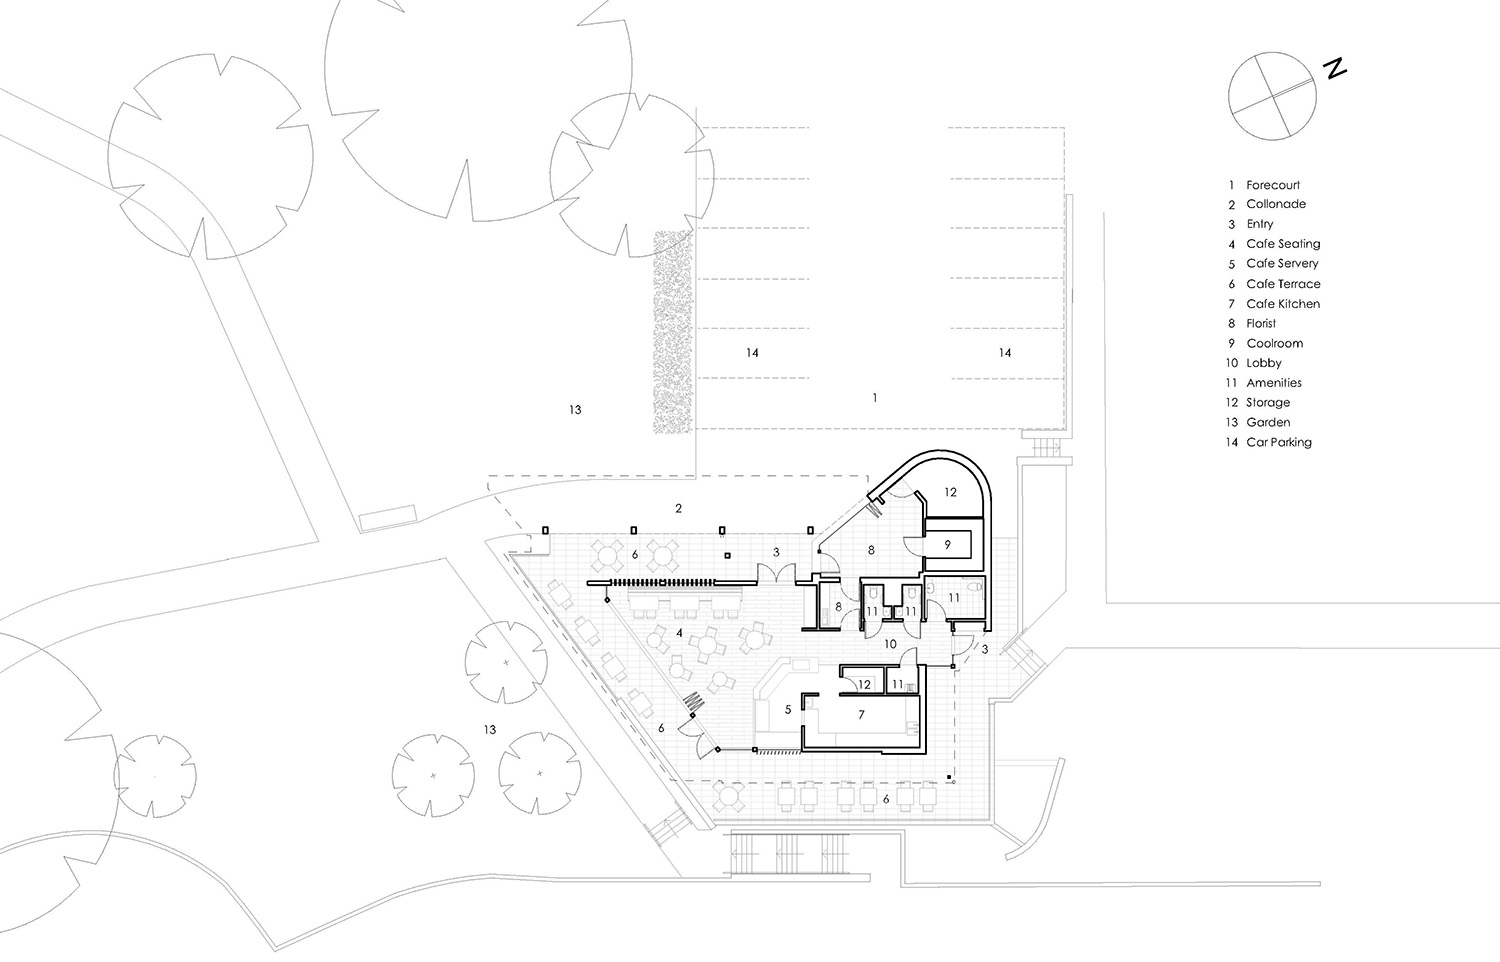 Cafe & Florist Macquarie Park Cemetery Architectural Floor Plan – Gardner Wetherill GW 5